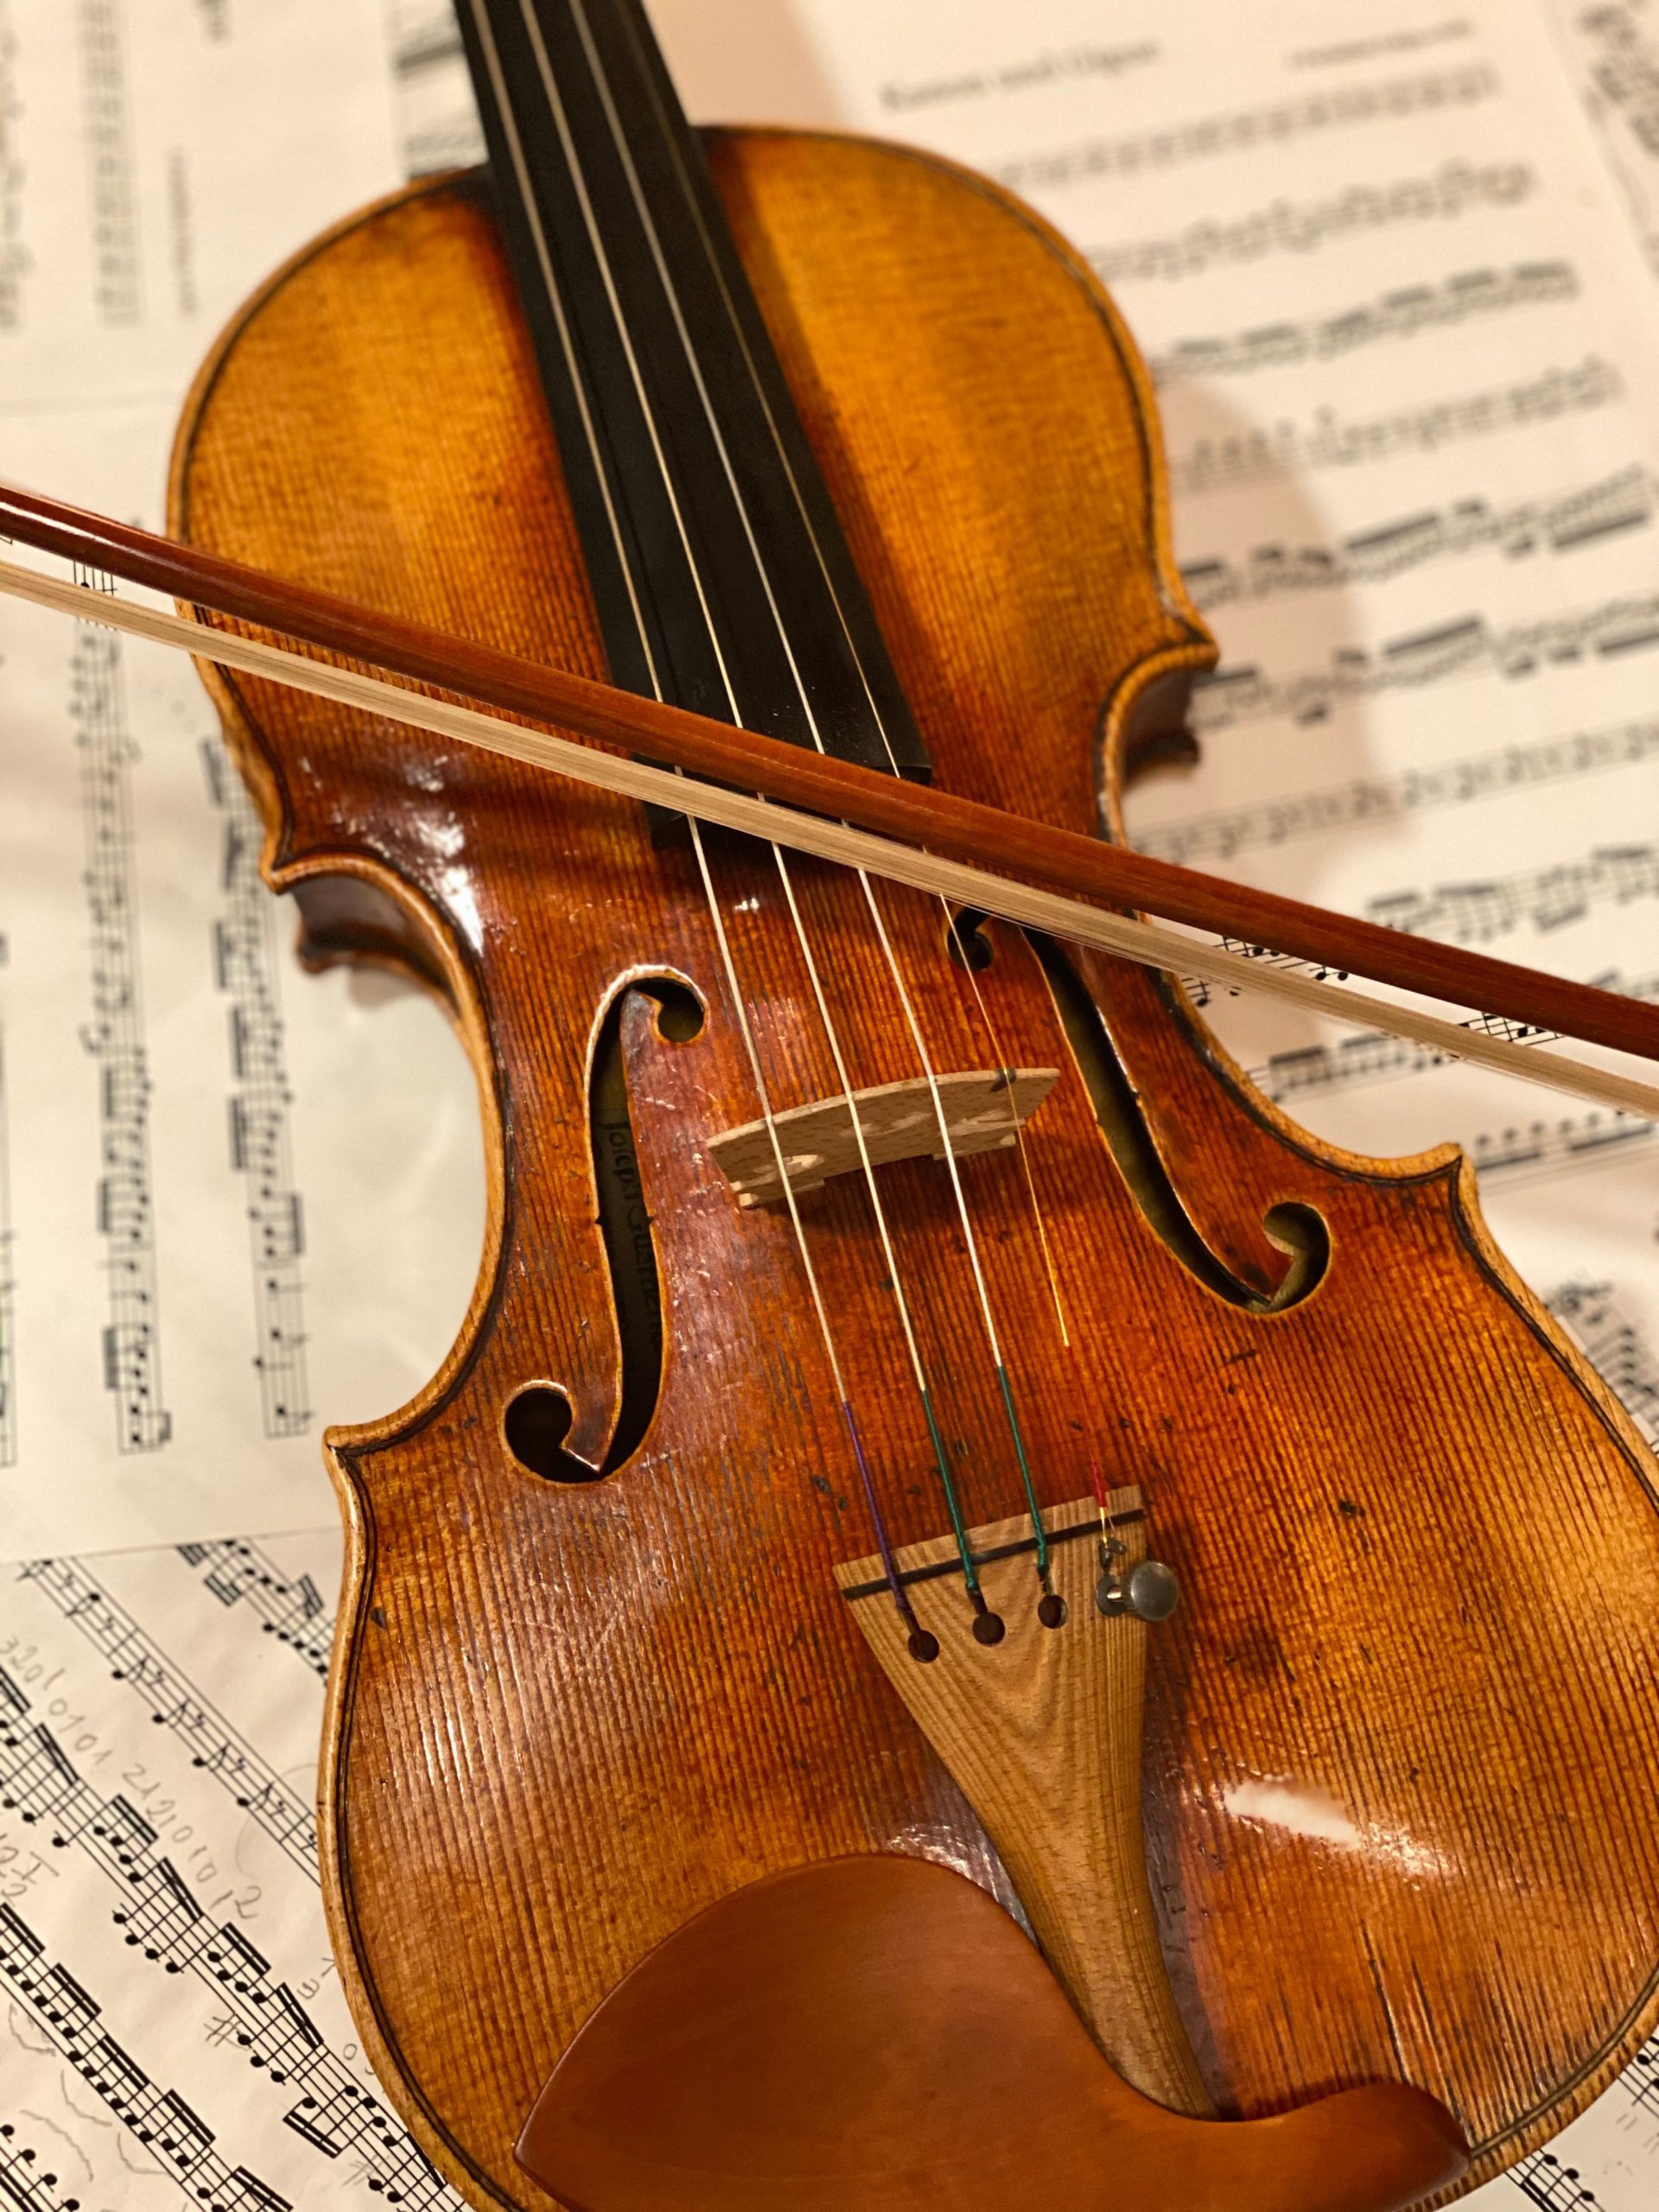 11 things you should be doing to look after your violin